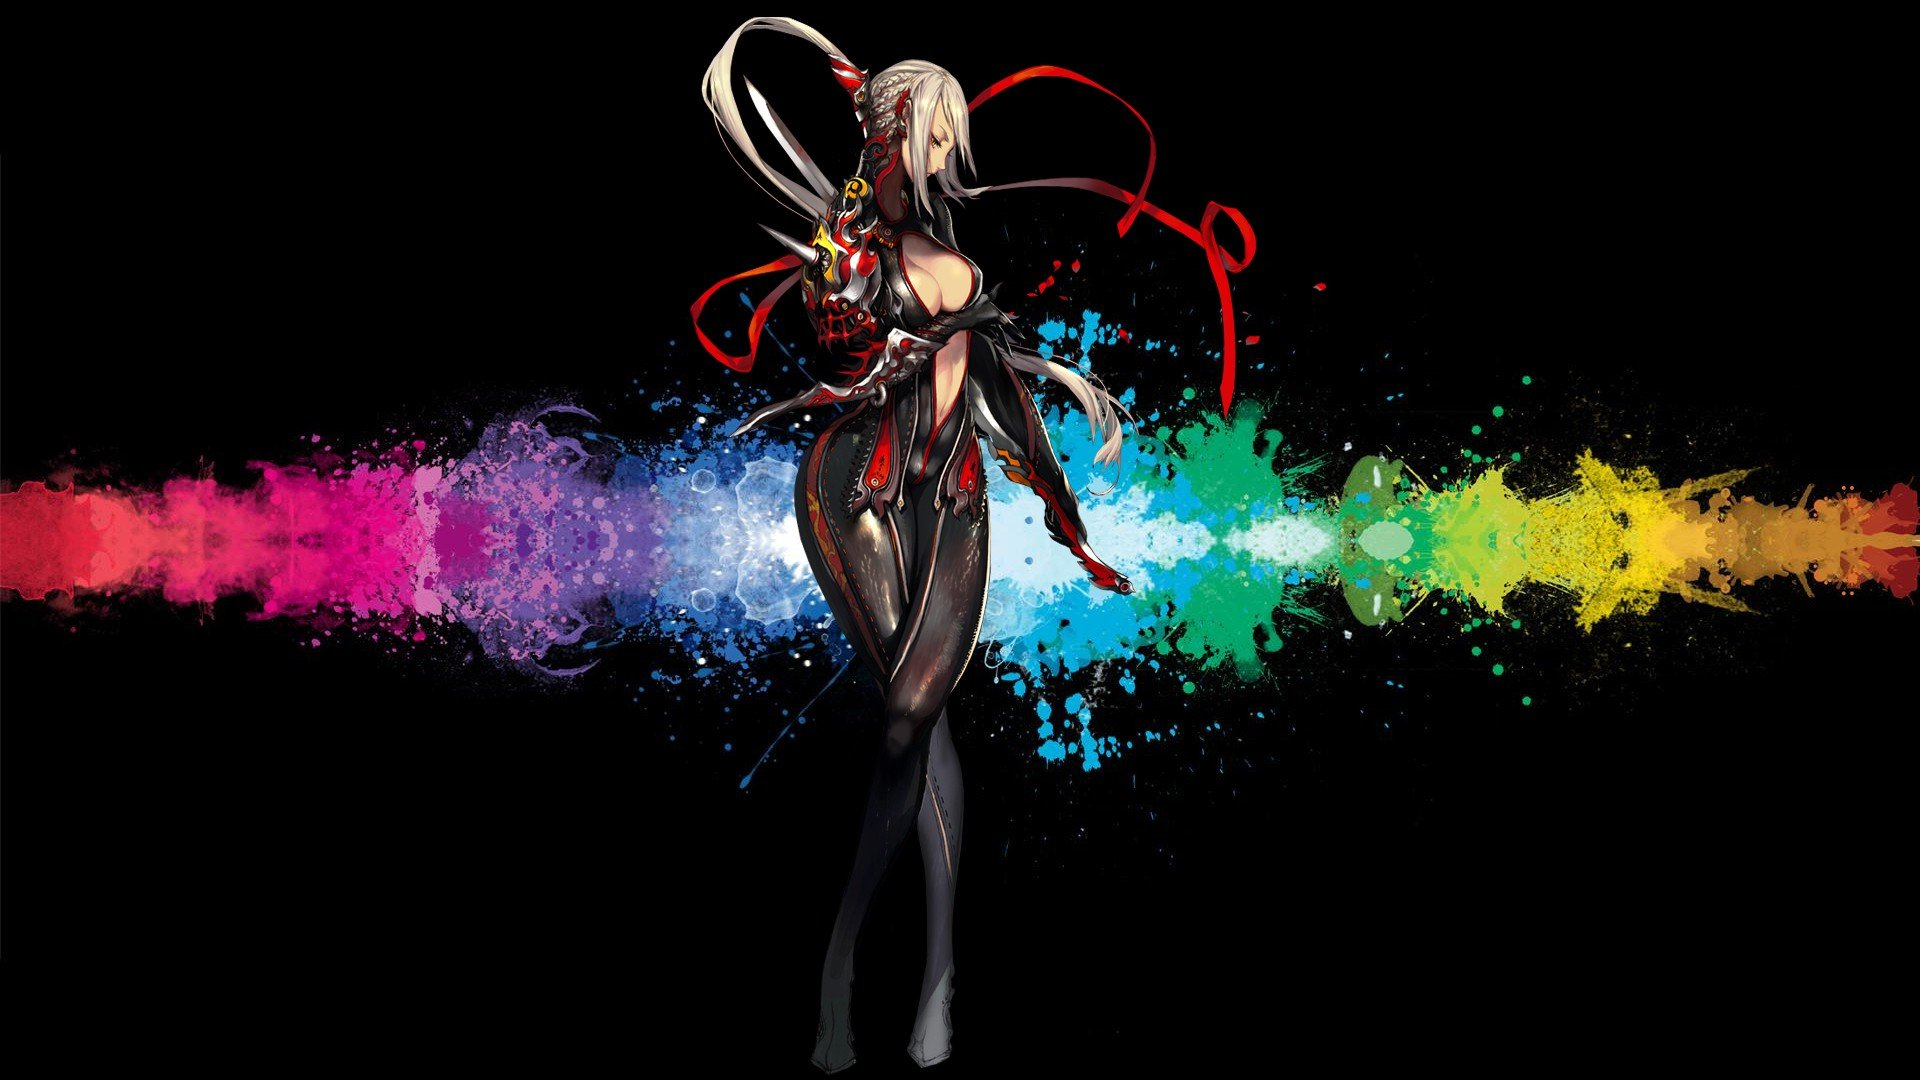 Blade And Soul Video Games Mmorpg Wallpapers HD 1920x1080